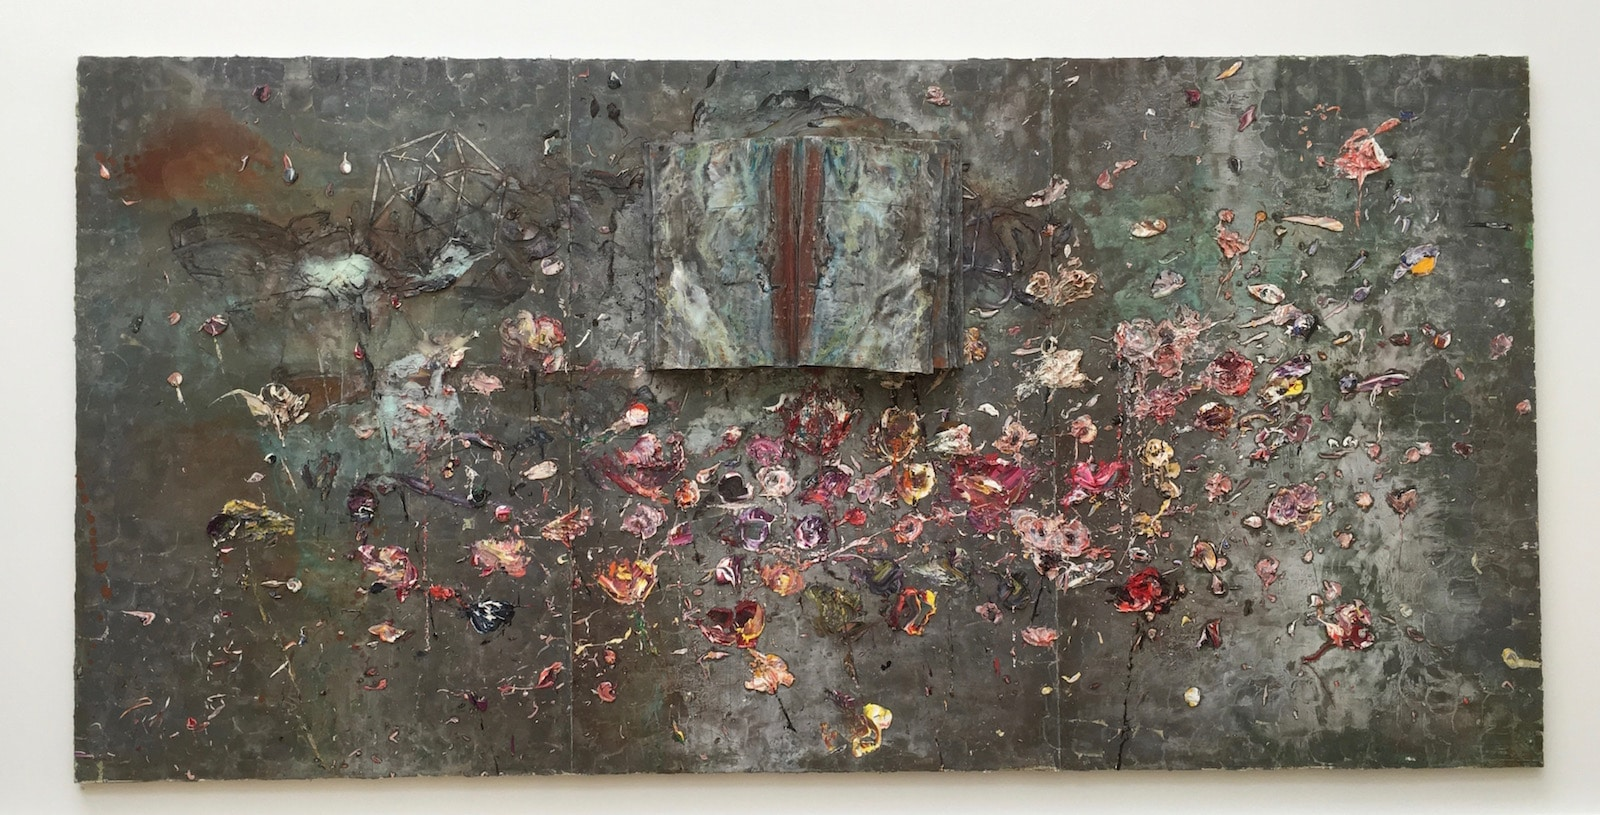 Anselm Kiefer Summer Exhibition Royal Academy reviewed at www.CELLOPHANELAND.com